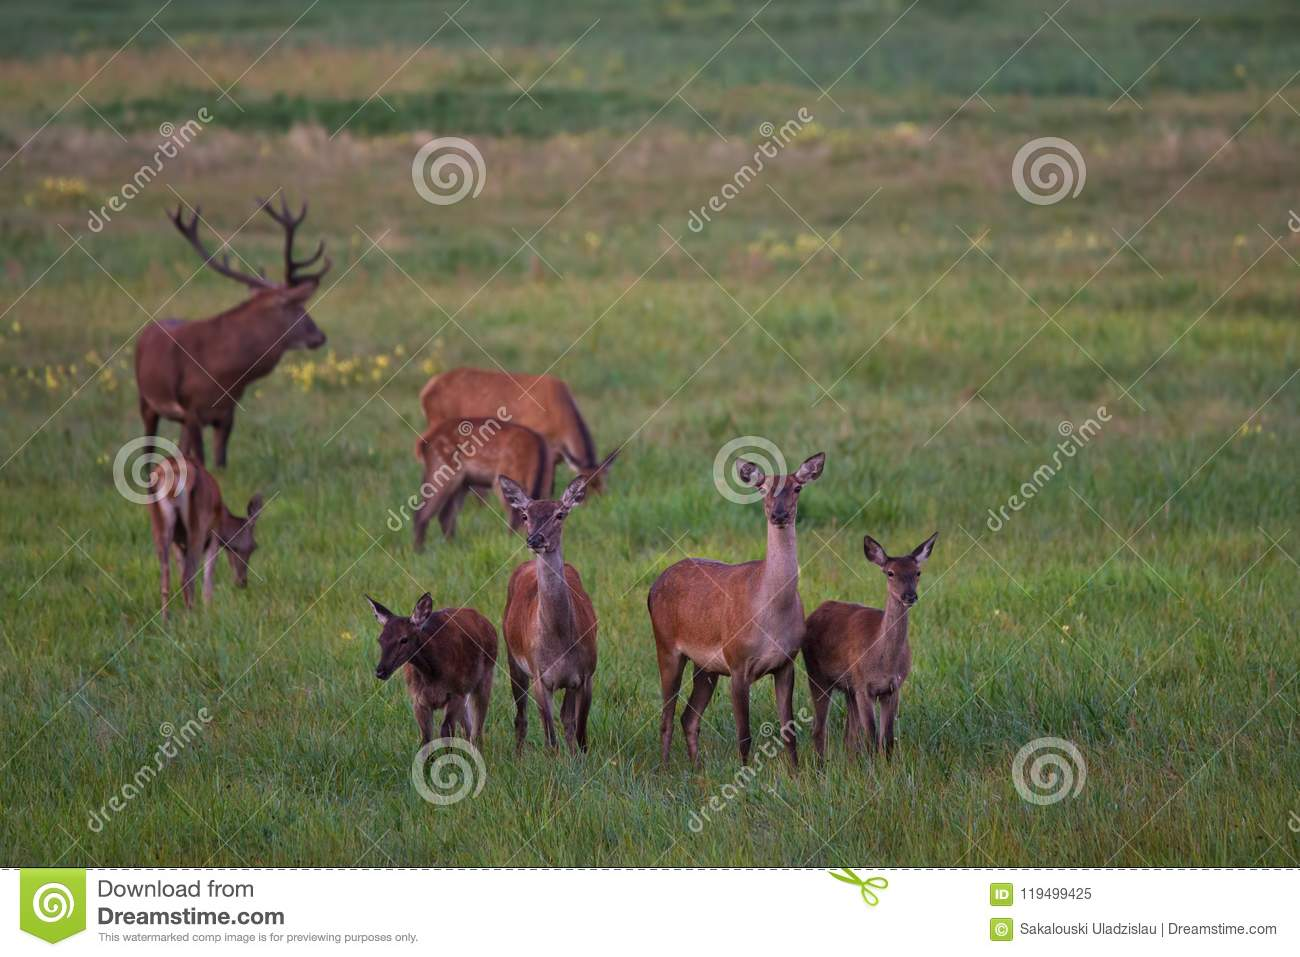 Herd Of Noble Deer Cervidae Graze On A Green Meadow With Dandelions. Eight Different Ages Red Deer: One Stag And Seven Females